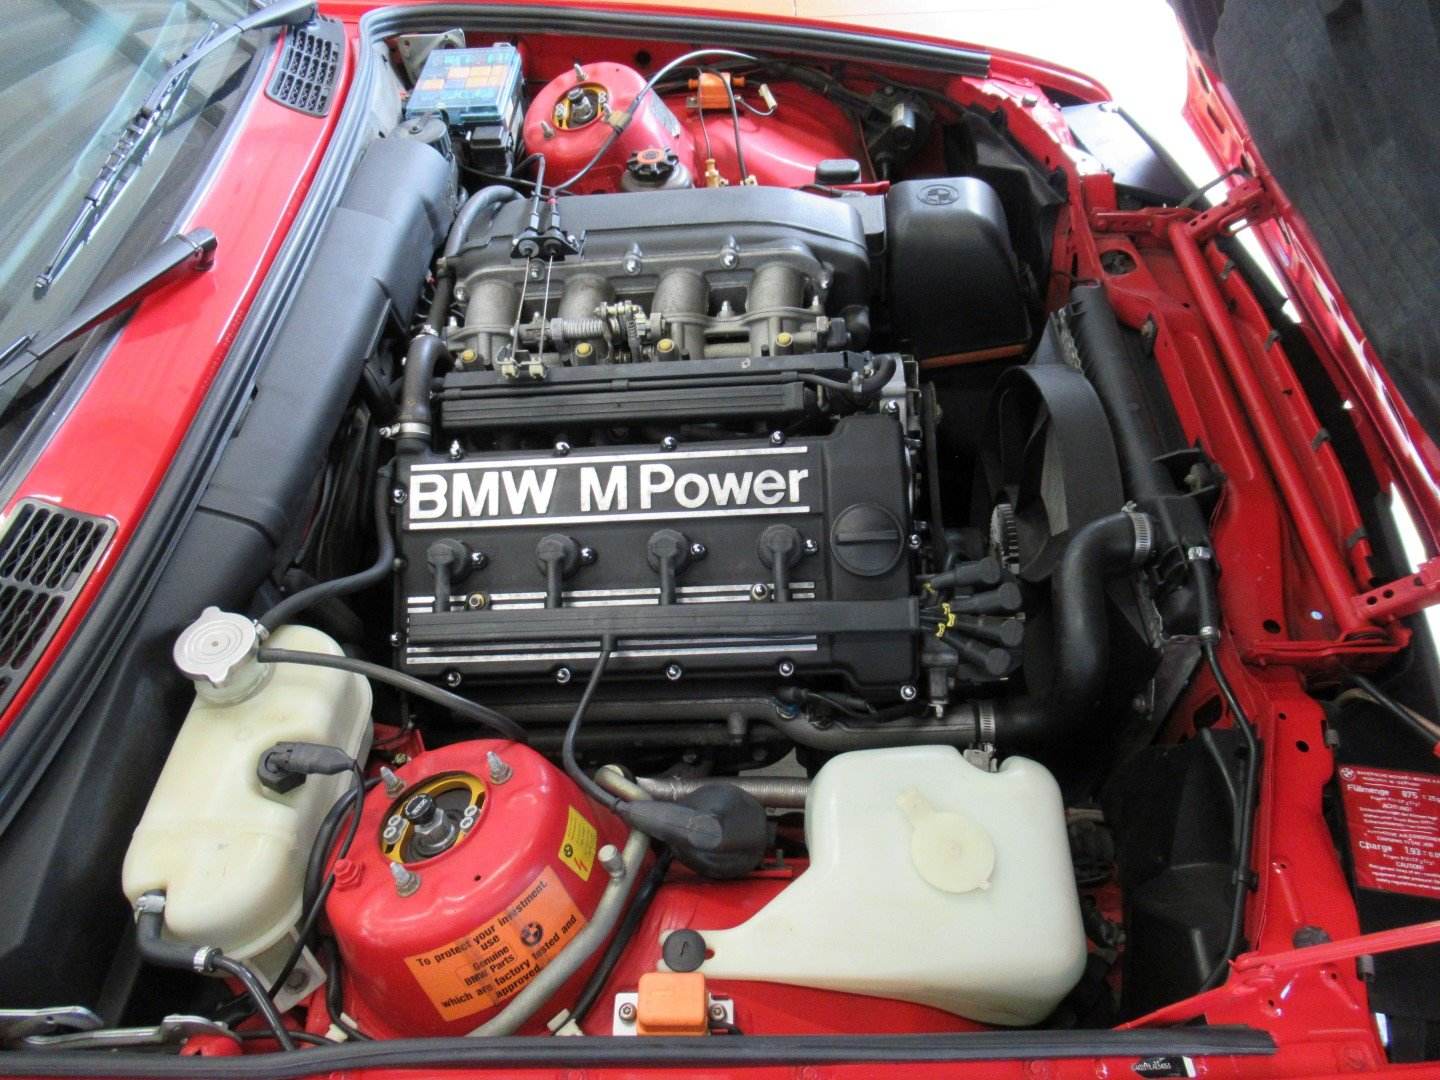 1990 BMW BMW E30 M3 Brillantrot For Sale (picture 5 of 6)